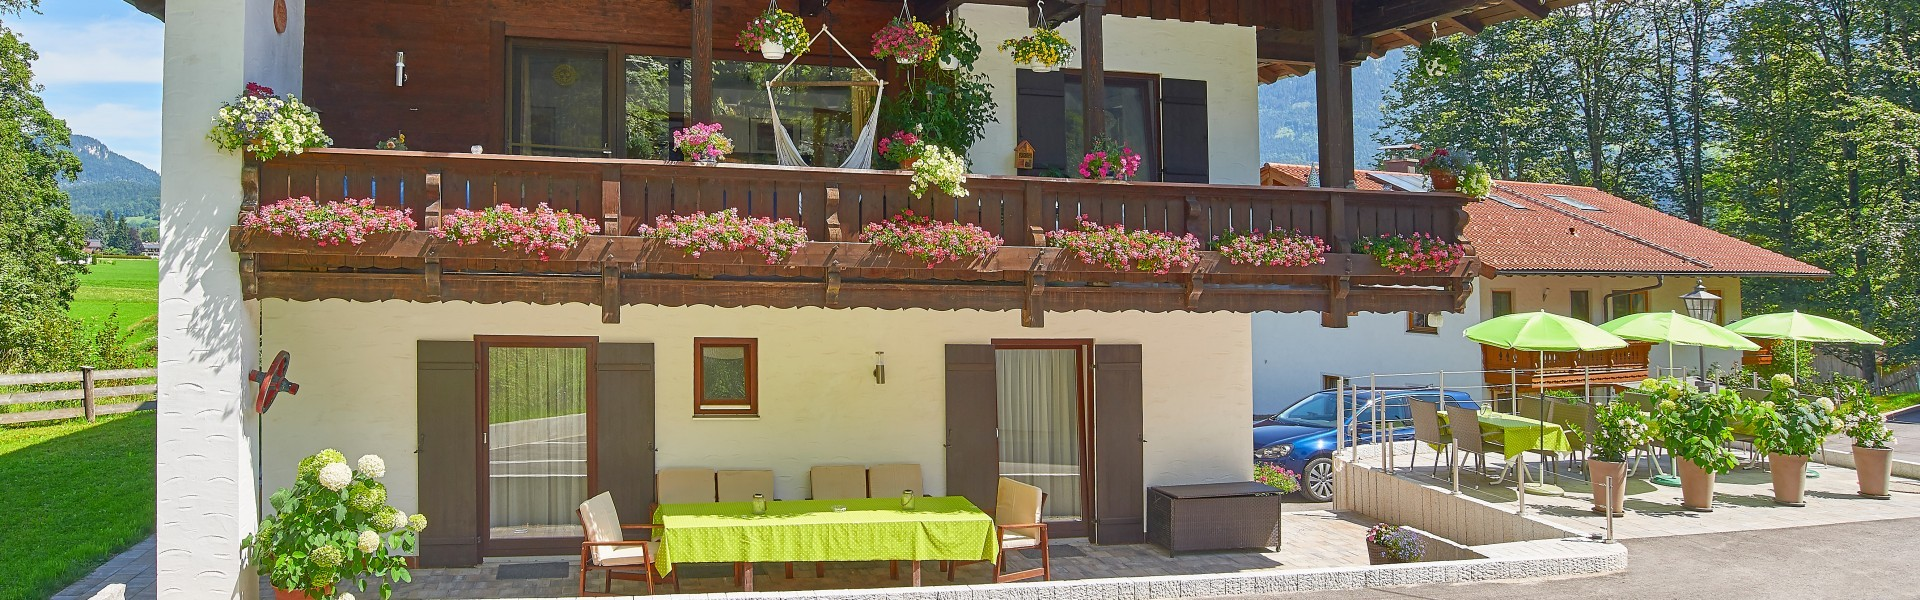 Pension Berganemone